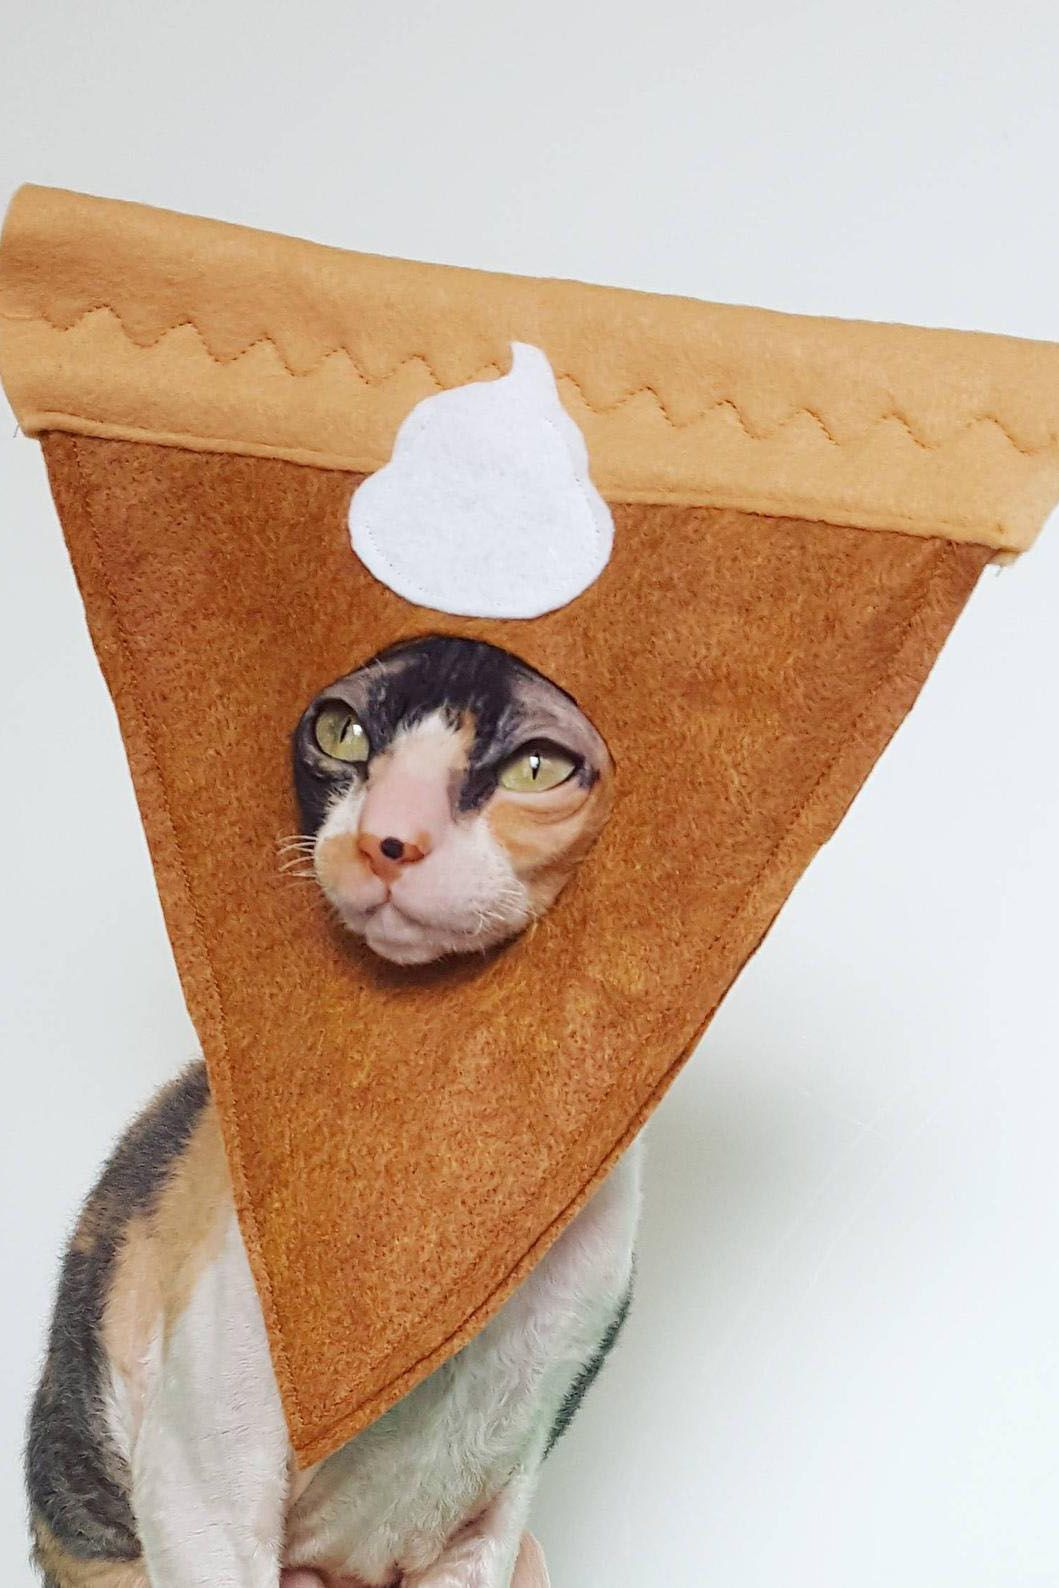 Pumpkin pie pet costume hat for dogs or cats. Carefully sewn so it can be enjoyed for many seasons and fun occasions, what is sweeter than your furry friend's cute face peeping out of a slice of pie? Made with soft brown felt, this hat features embellishments such as a scalloped stitch over the crust and a nice sized dollop of bright white whipped cream stitched securely onto the costume. Simply place the costume on your pet by gently easing their face through the costume hole.